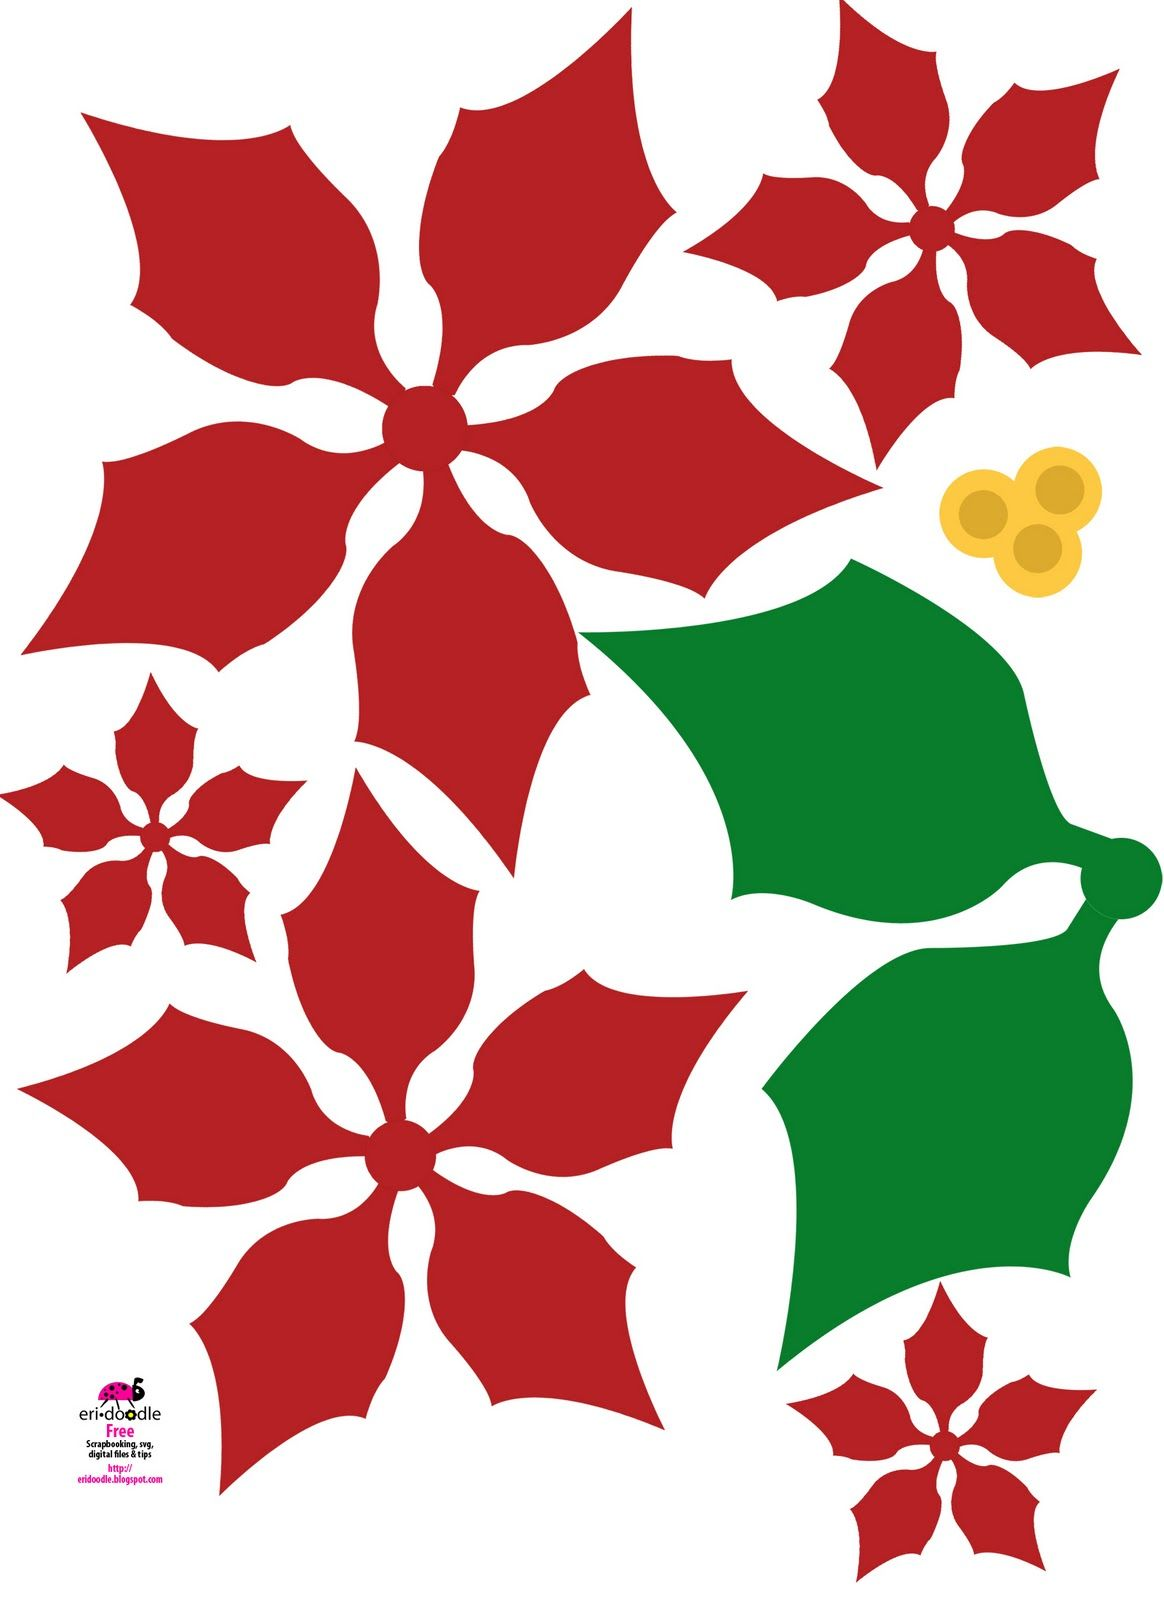 paper poinsettia christmas flower template for kids paper poinsettia christmas flower template for kids wedding kits